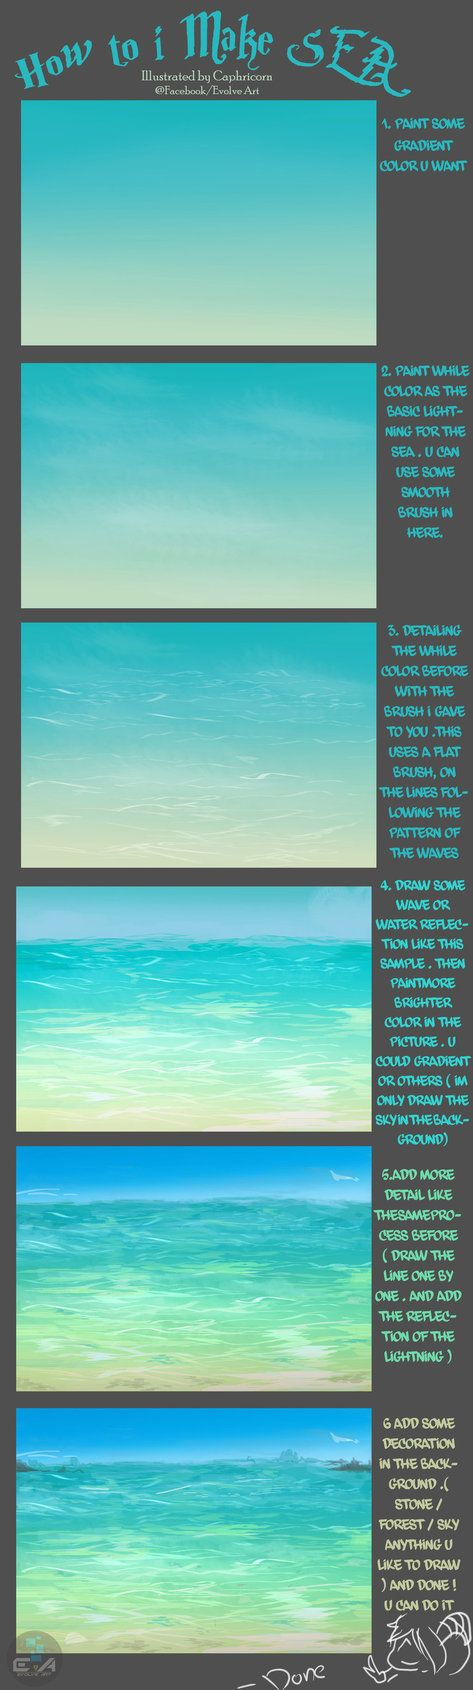 How to make Sea ^^ by Caphricorn on deviantART